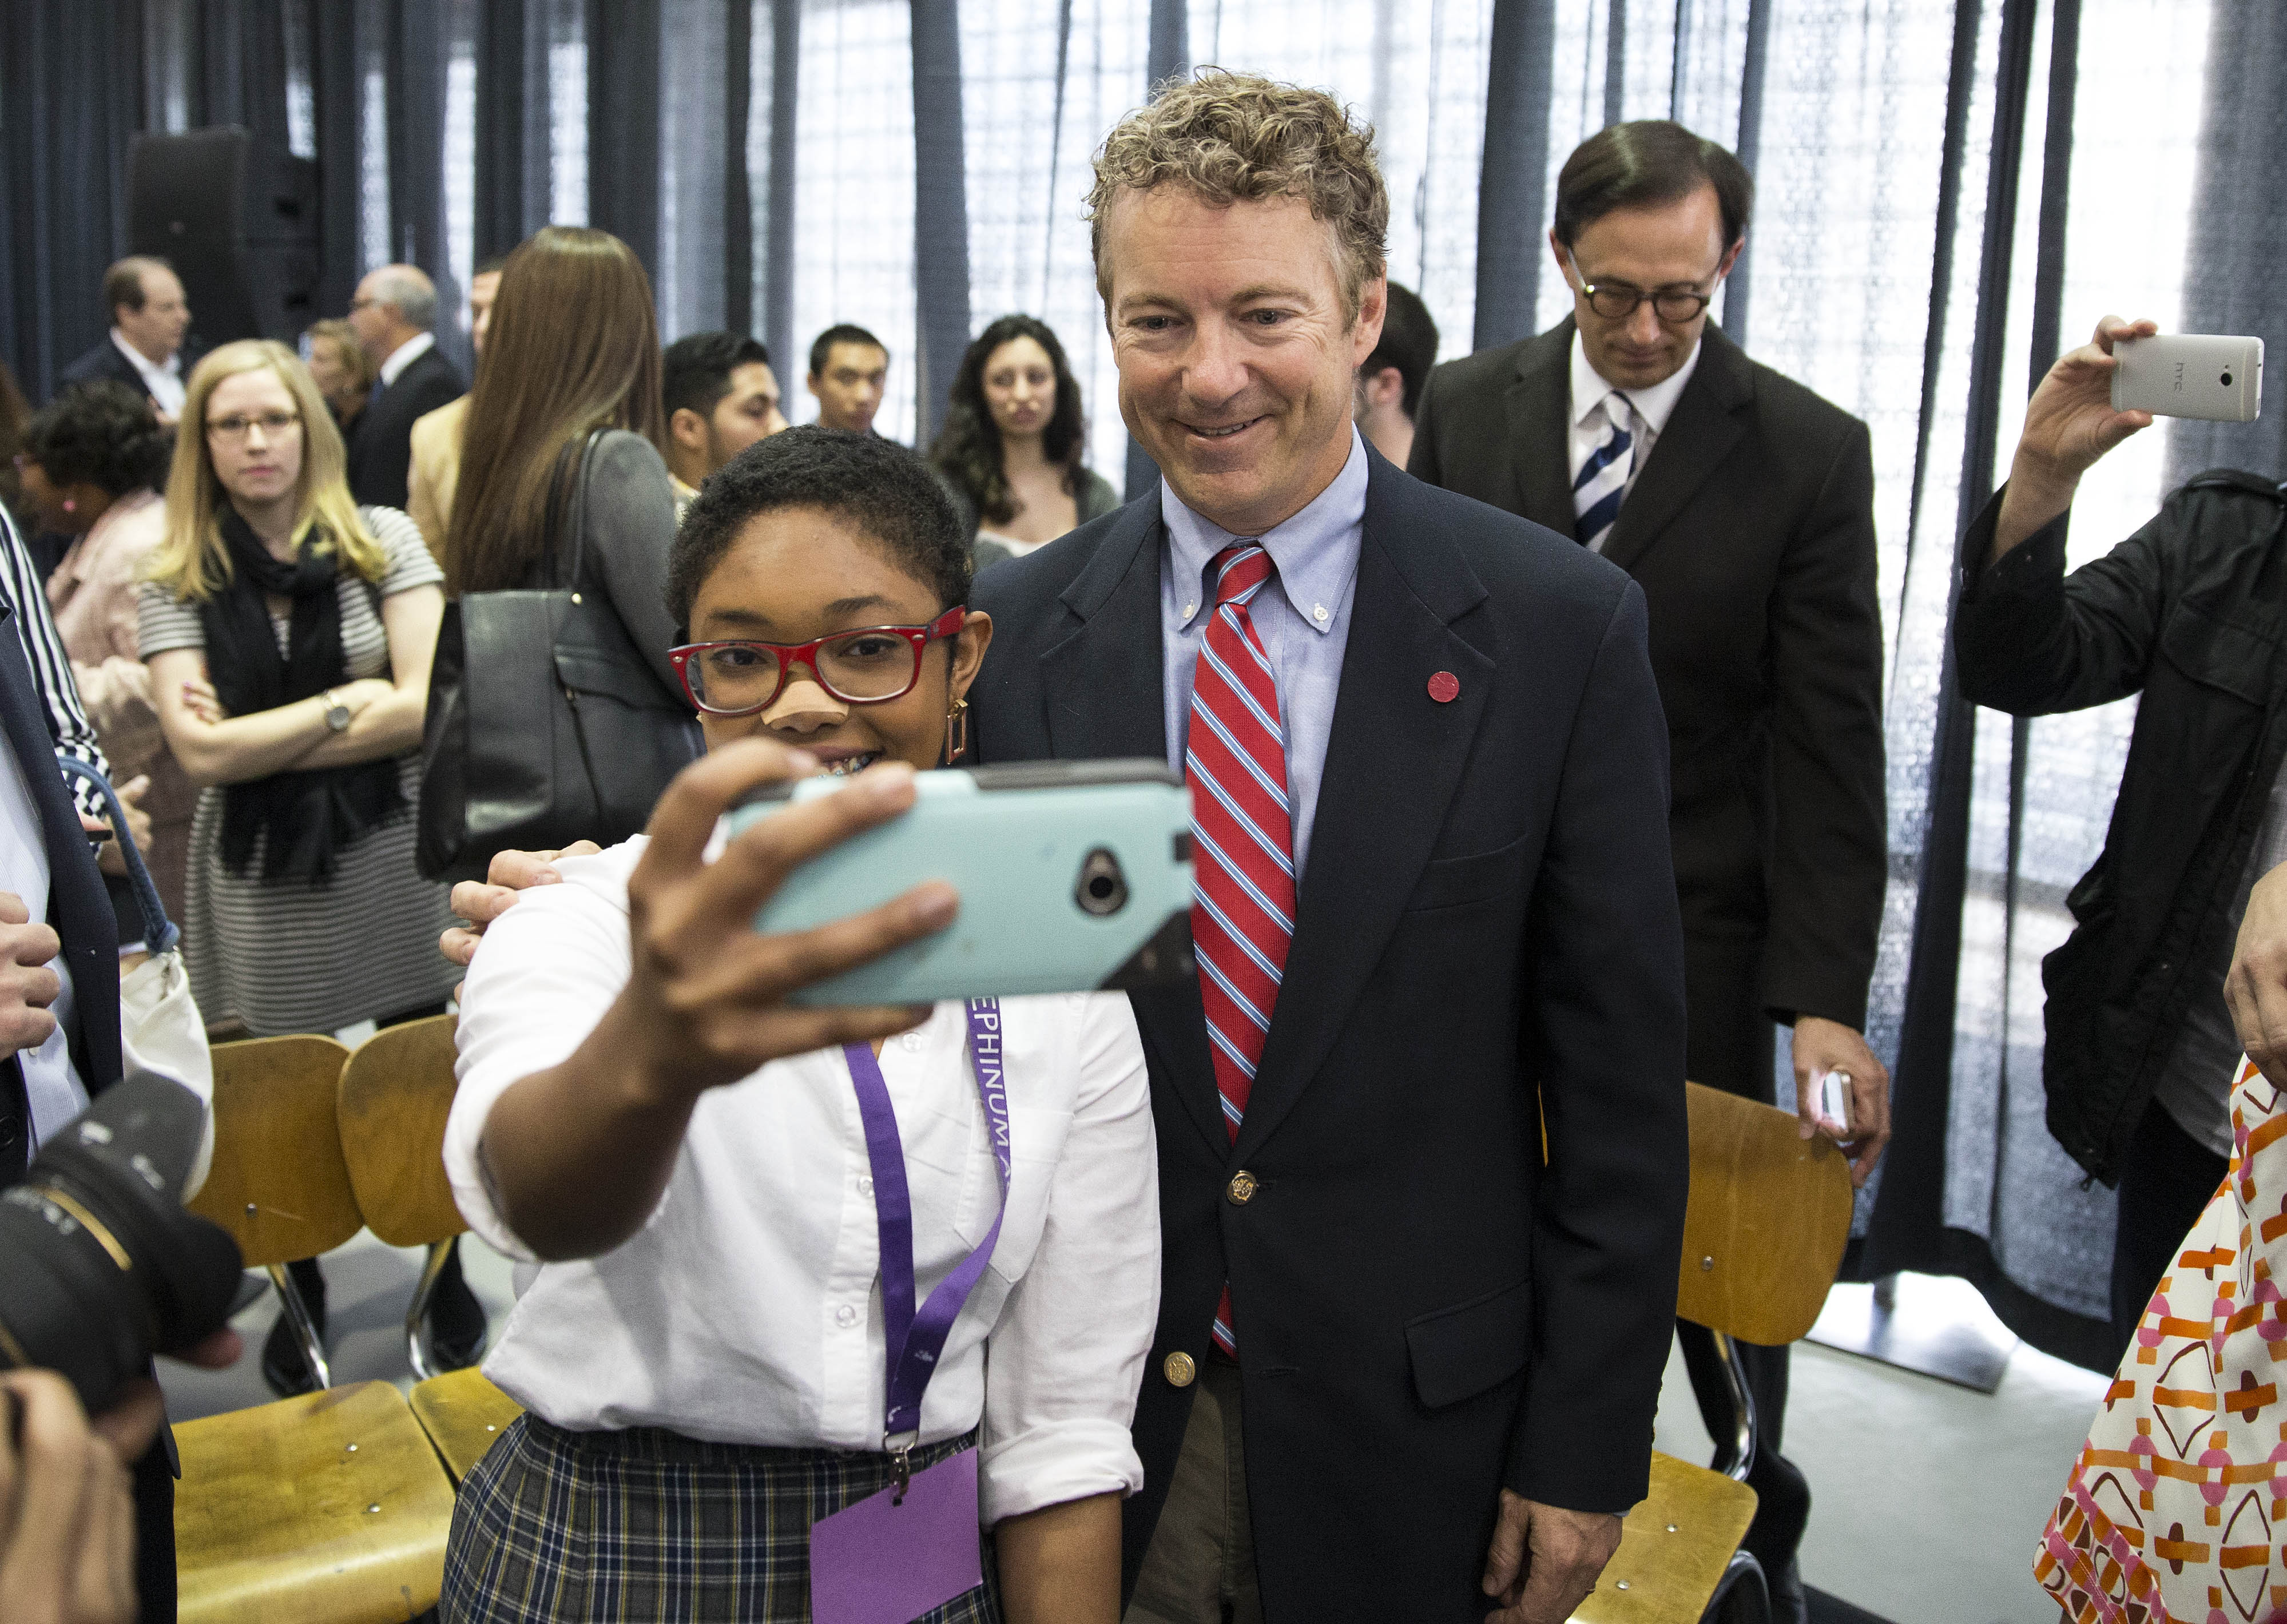 Angelika Noel, 17, poses with Sen. Rand Paul, R-Ky., during a visit to Josephinum Academy in Chicago in April of 2014.